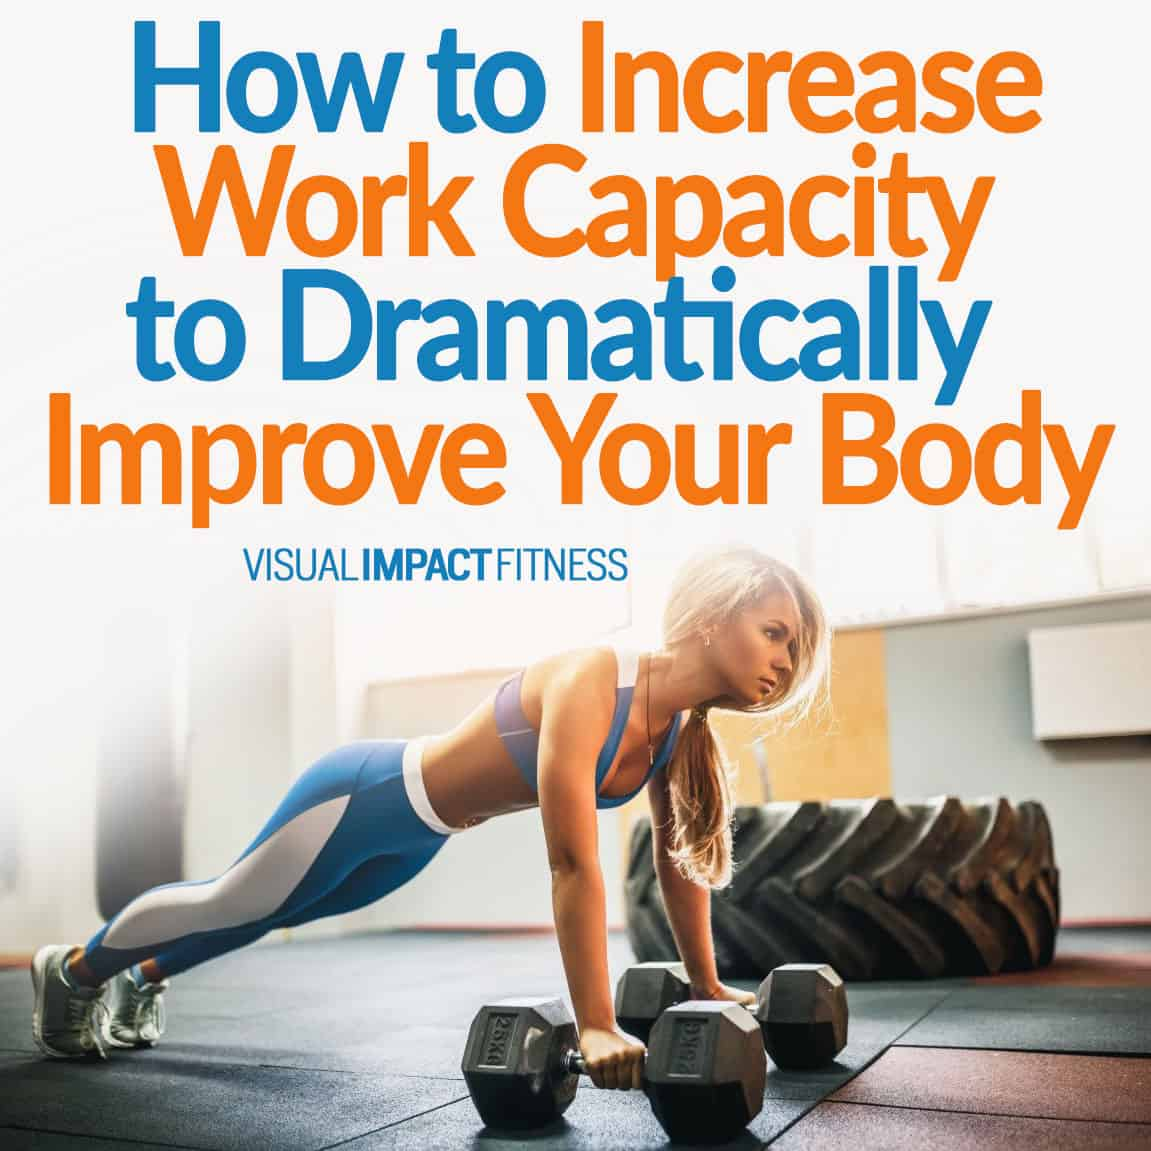 Increase Work Capacity to Dramatically Improve Your Body